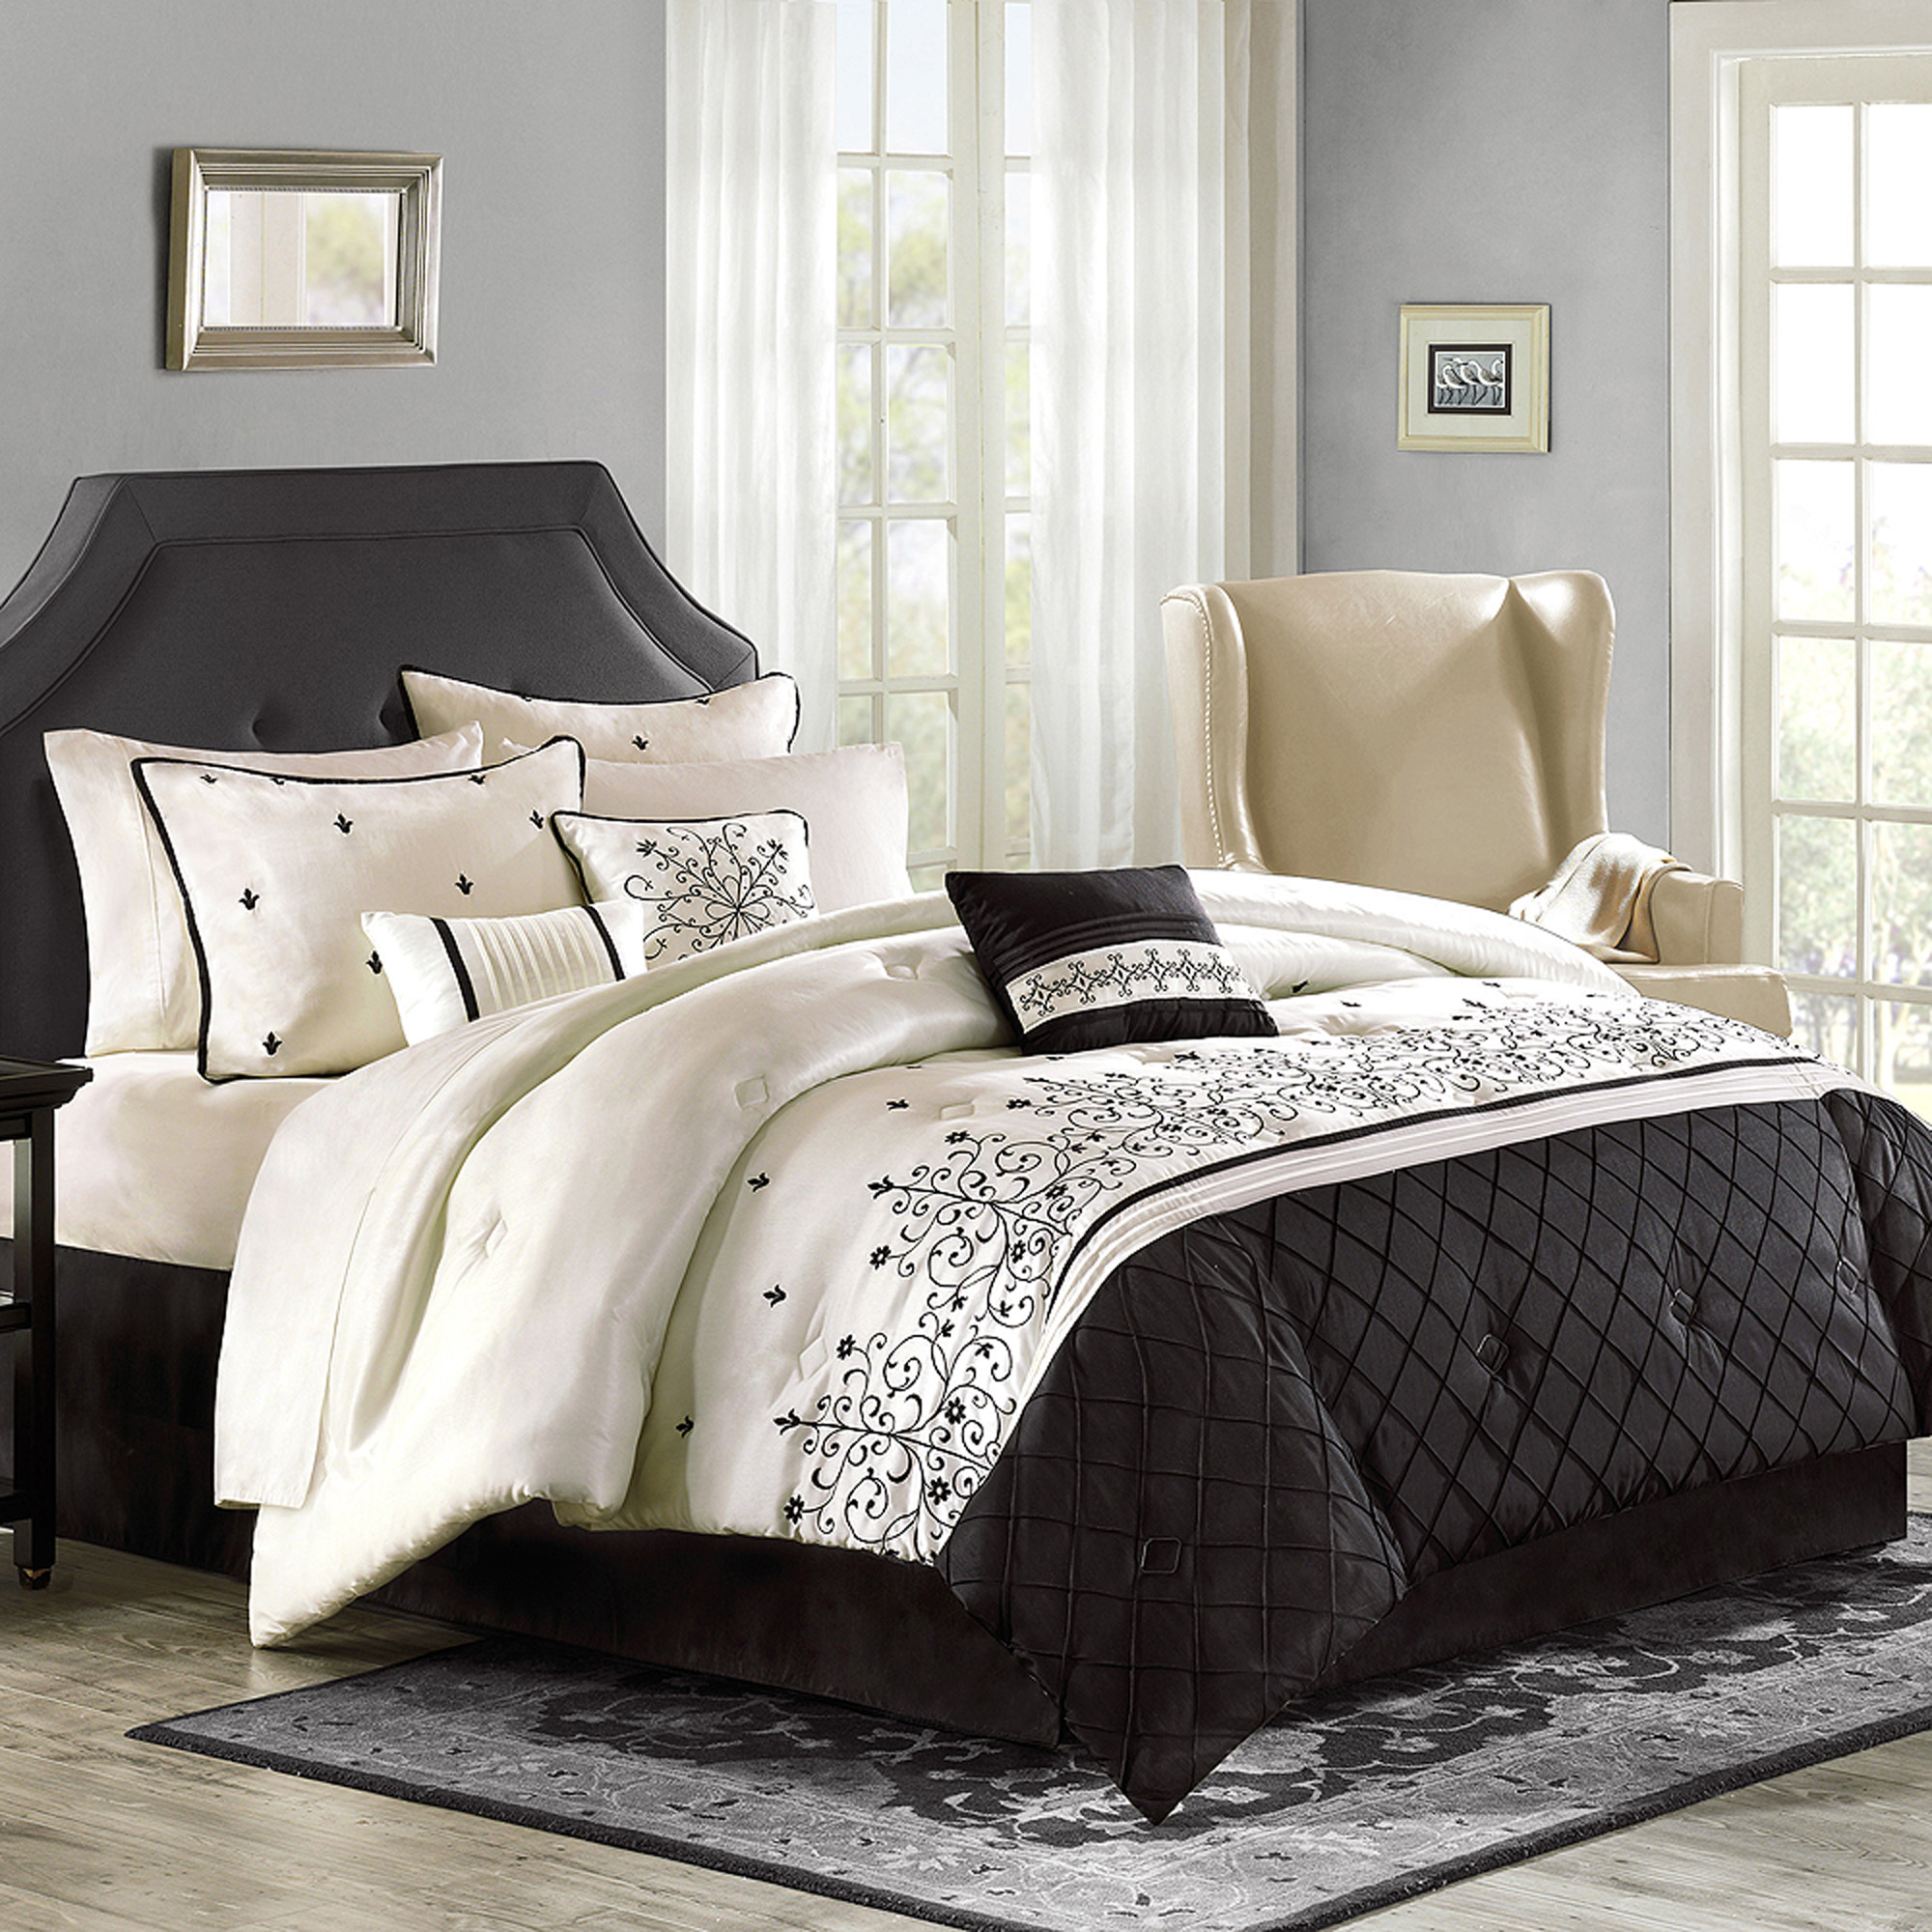 Luxury home willowbrook 8 piece comforter set for Better homes and gardens customer service telephone number